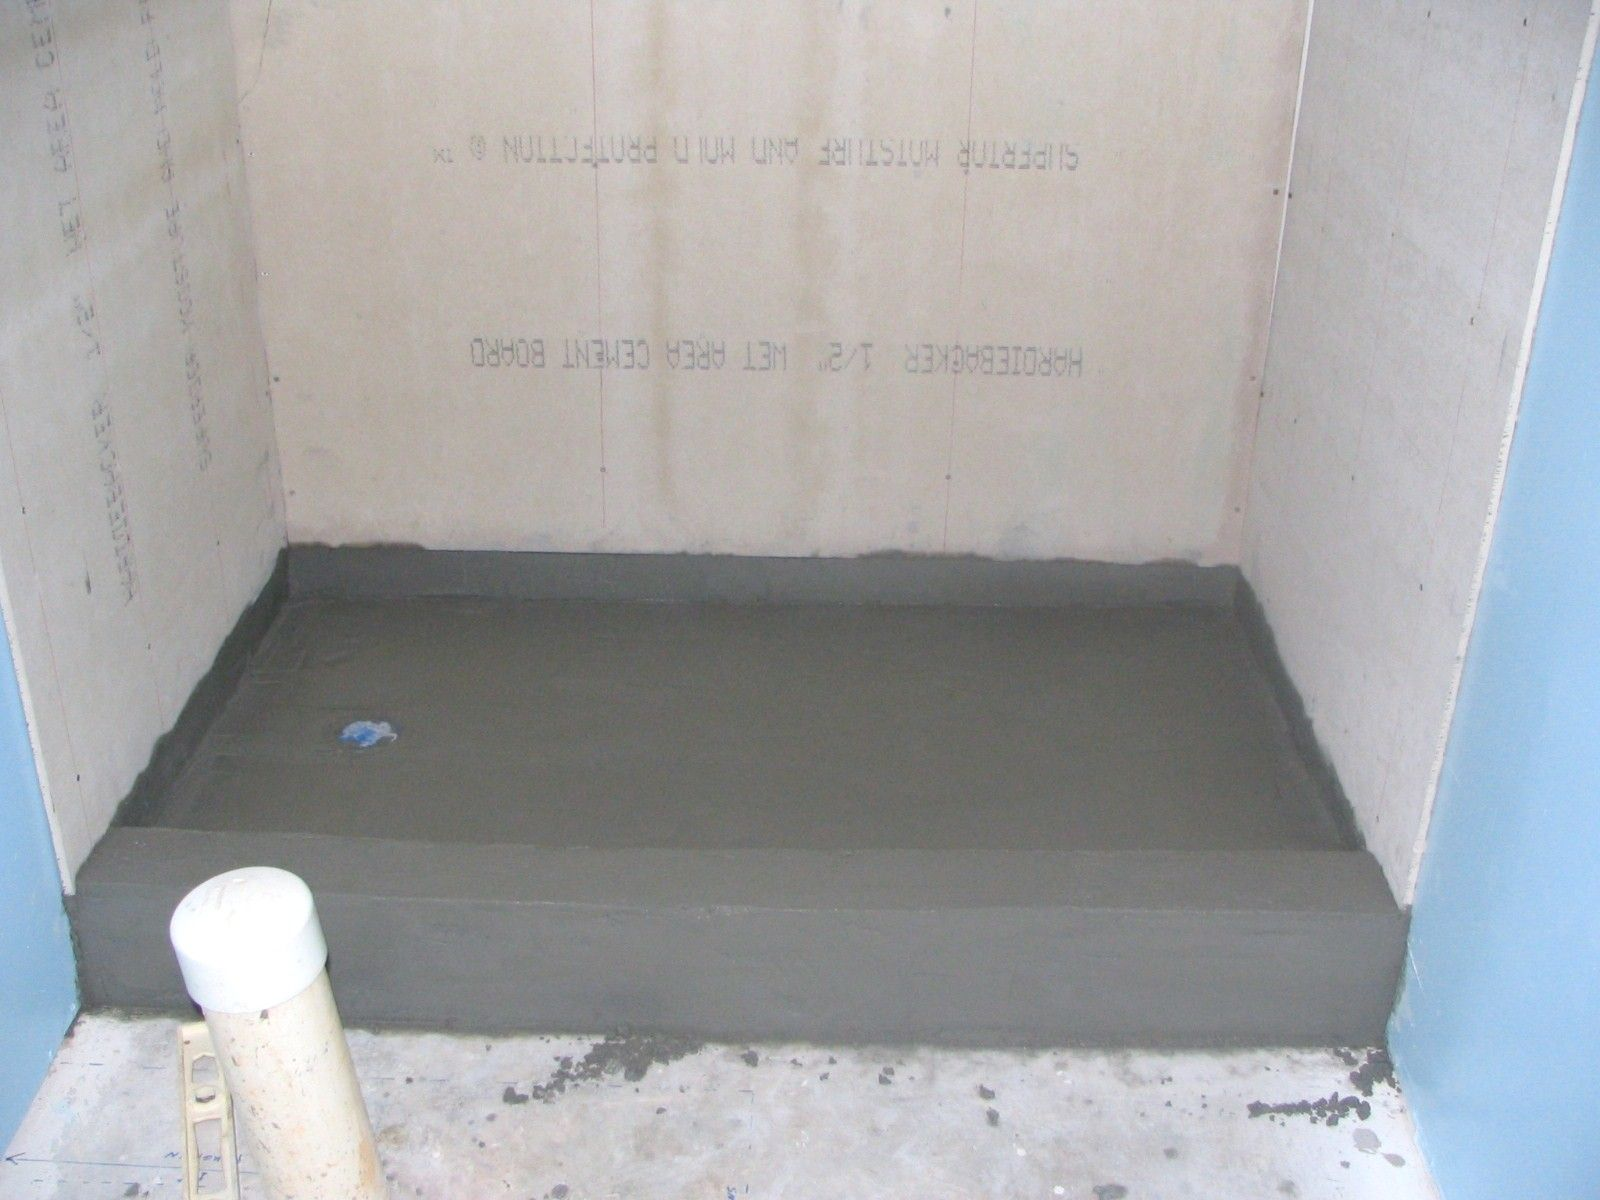 Basement Bathroom Shower Pan Mortar Bed And Cement Backer Board On Walls Concrete Shower Pan Concrete Shower Building A Shower Pan